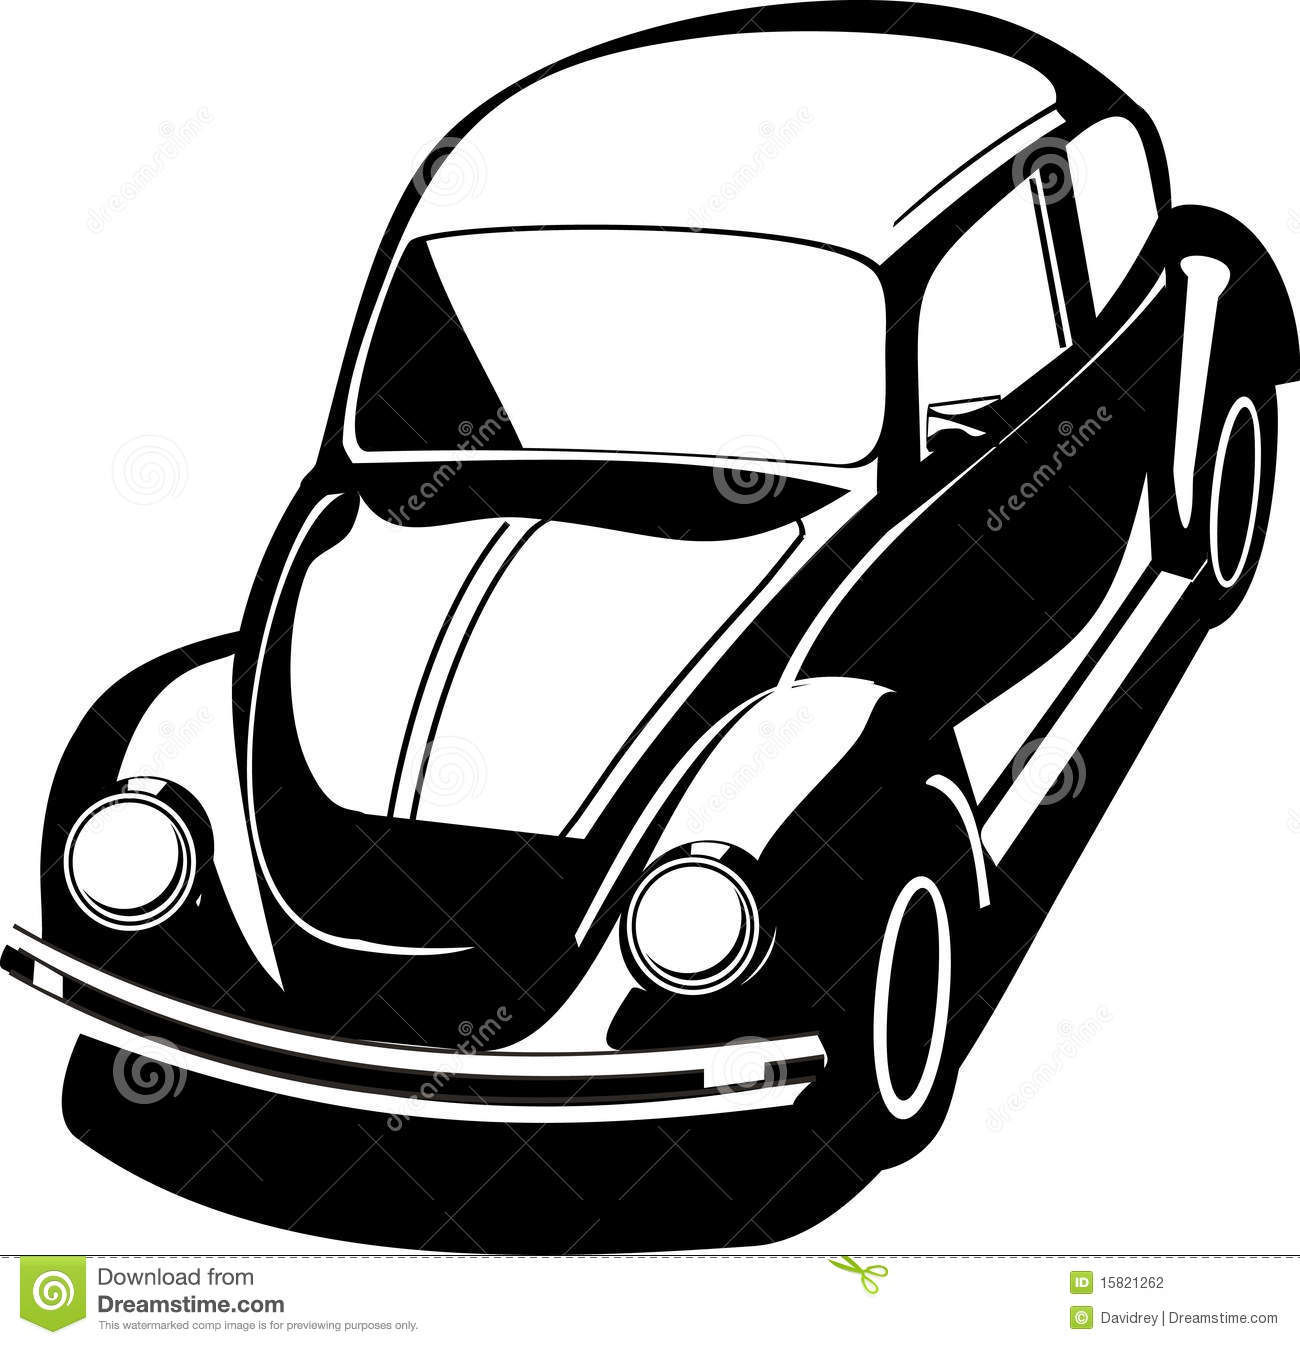 Black volkswagen bug stock vector. Image of drawing, vynil - 15821262